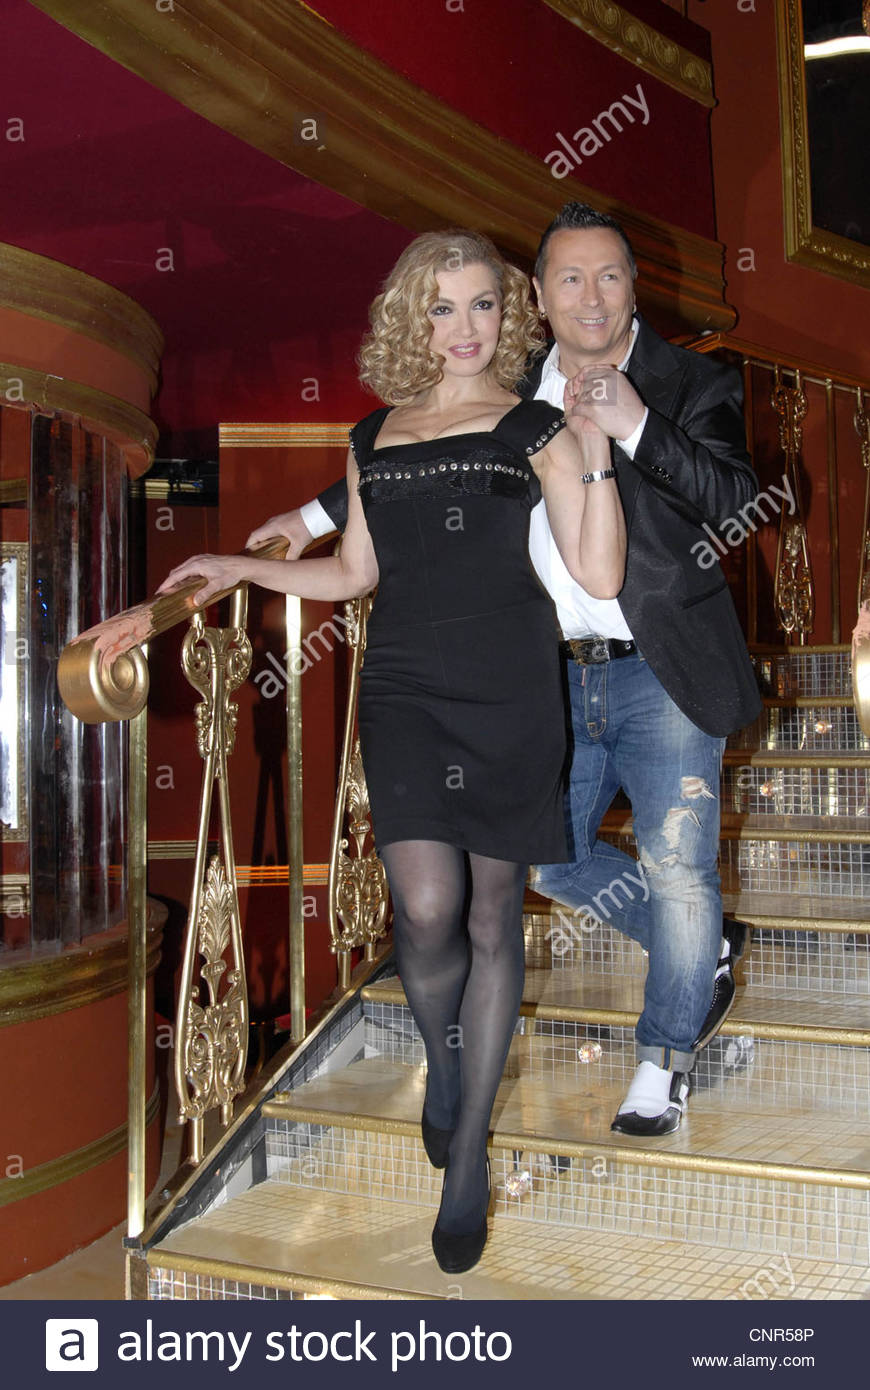 Milly Carlucci (born 1954) Milly Carlucci (born 1954) new photo